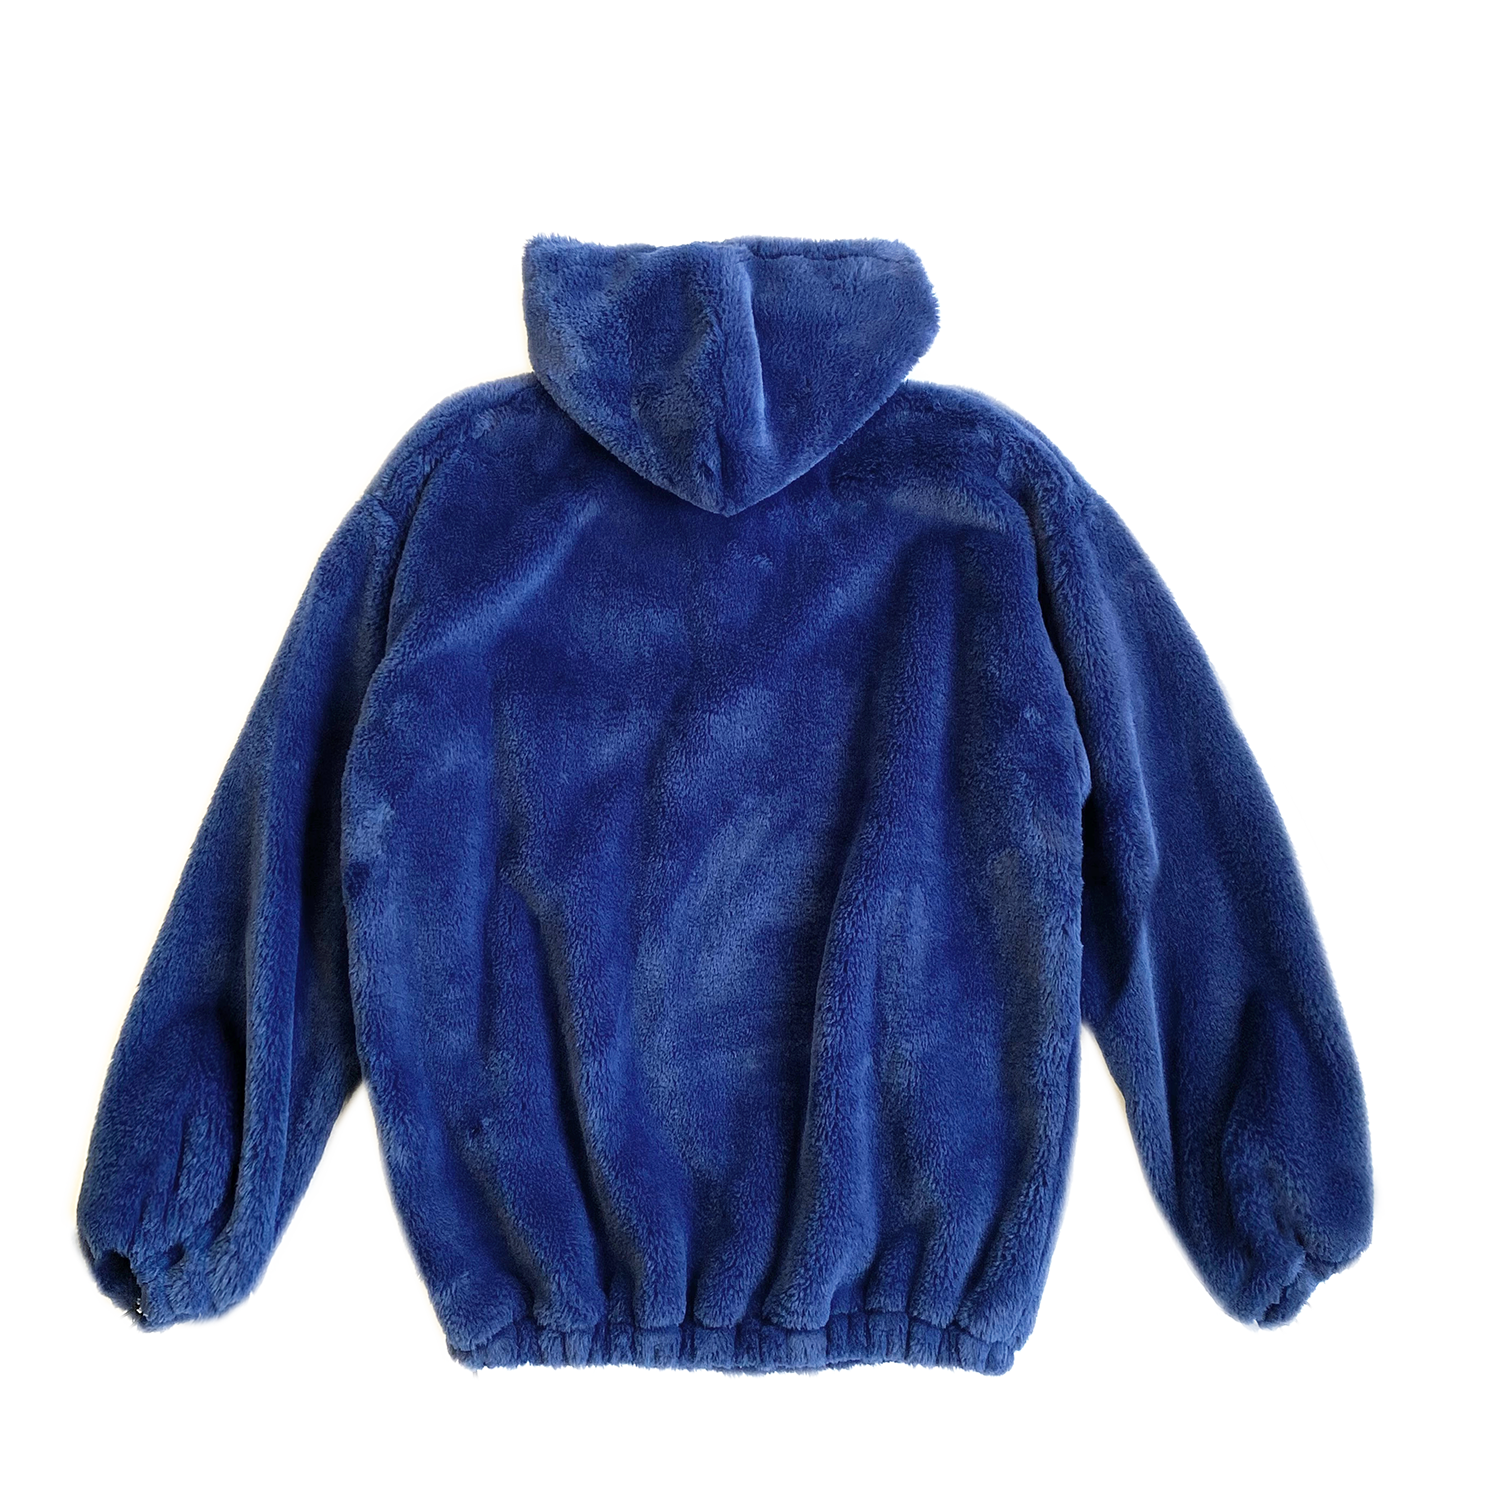 100% Recycled Teddy Lace-up Hoodie - Marine Blue - House of Fluff